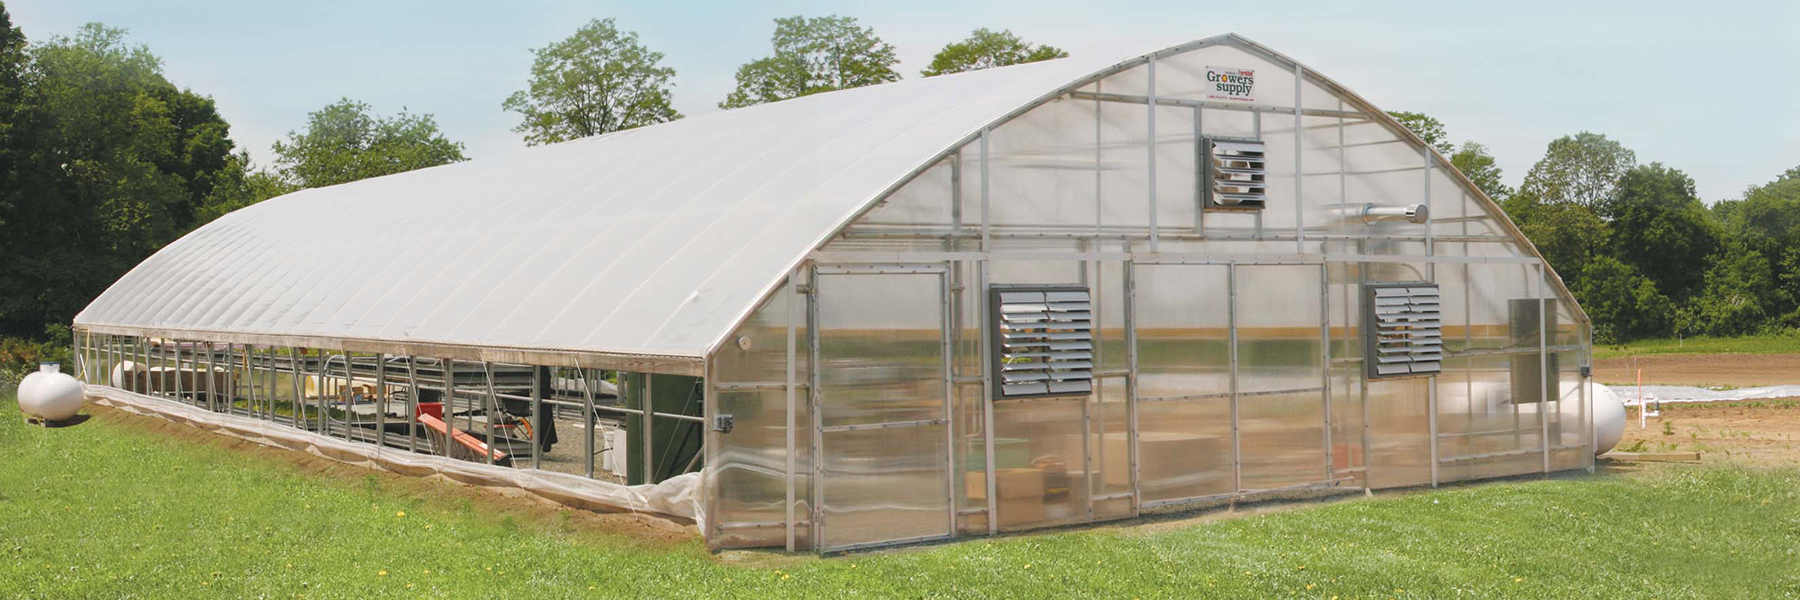 Rosendale Greenhouse exterior